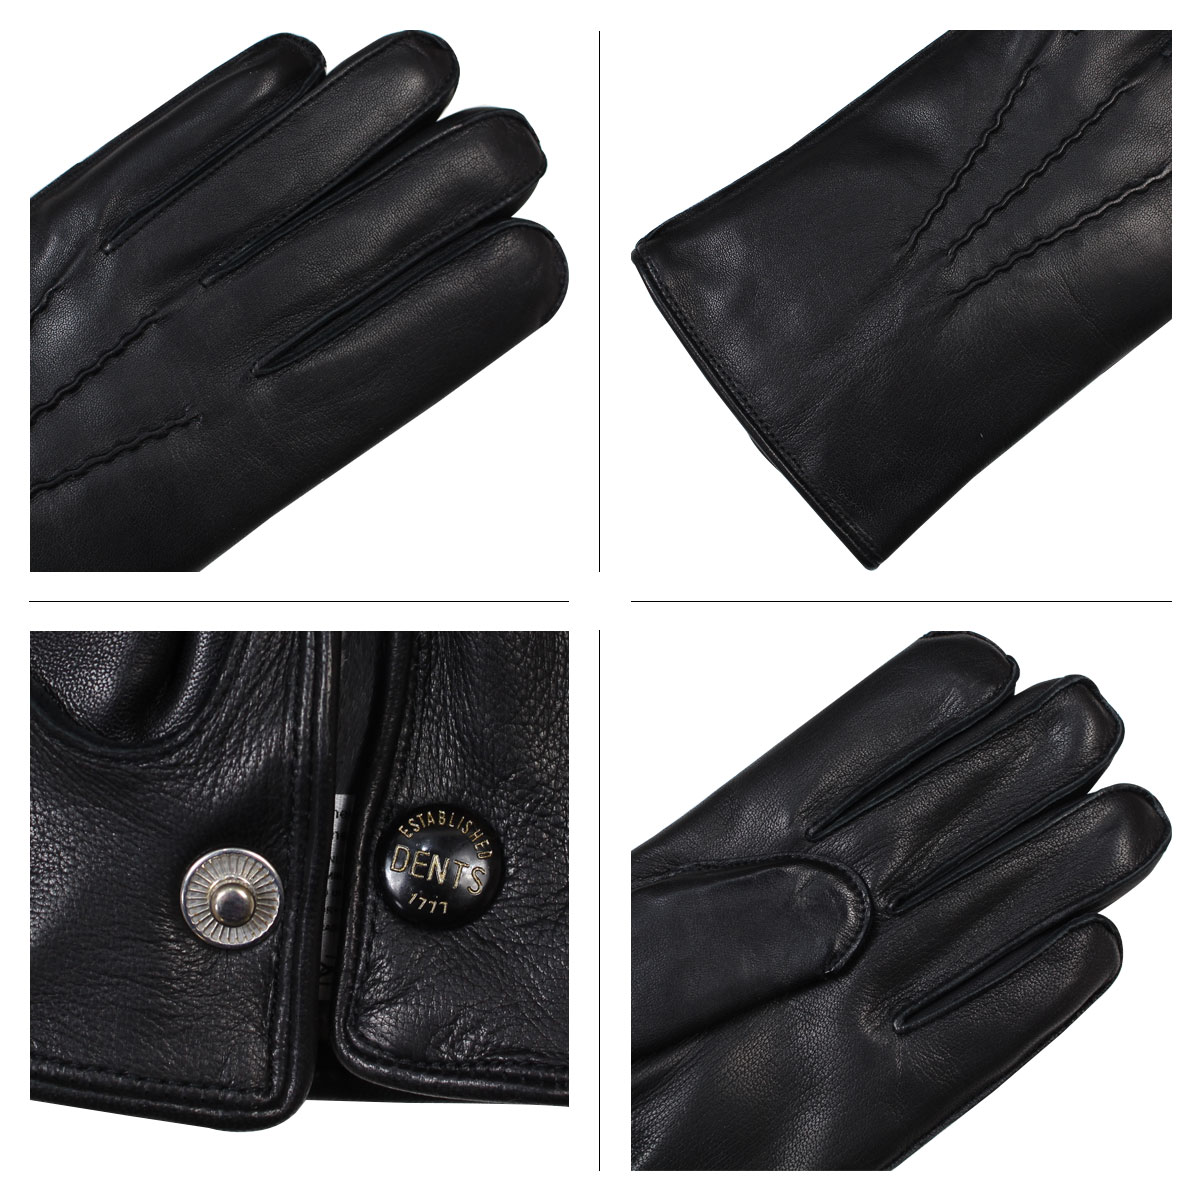 Mens leather gloves dents - Dents Gloves Mens Gloves Dents Leather Gloves Lnd Fur 15 1590 Book Product 11